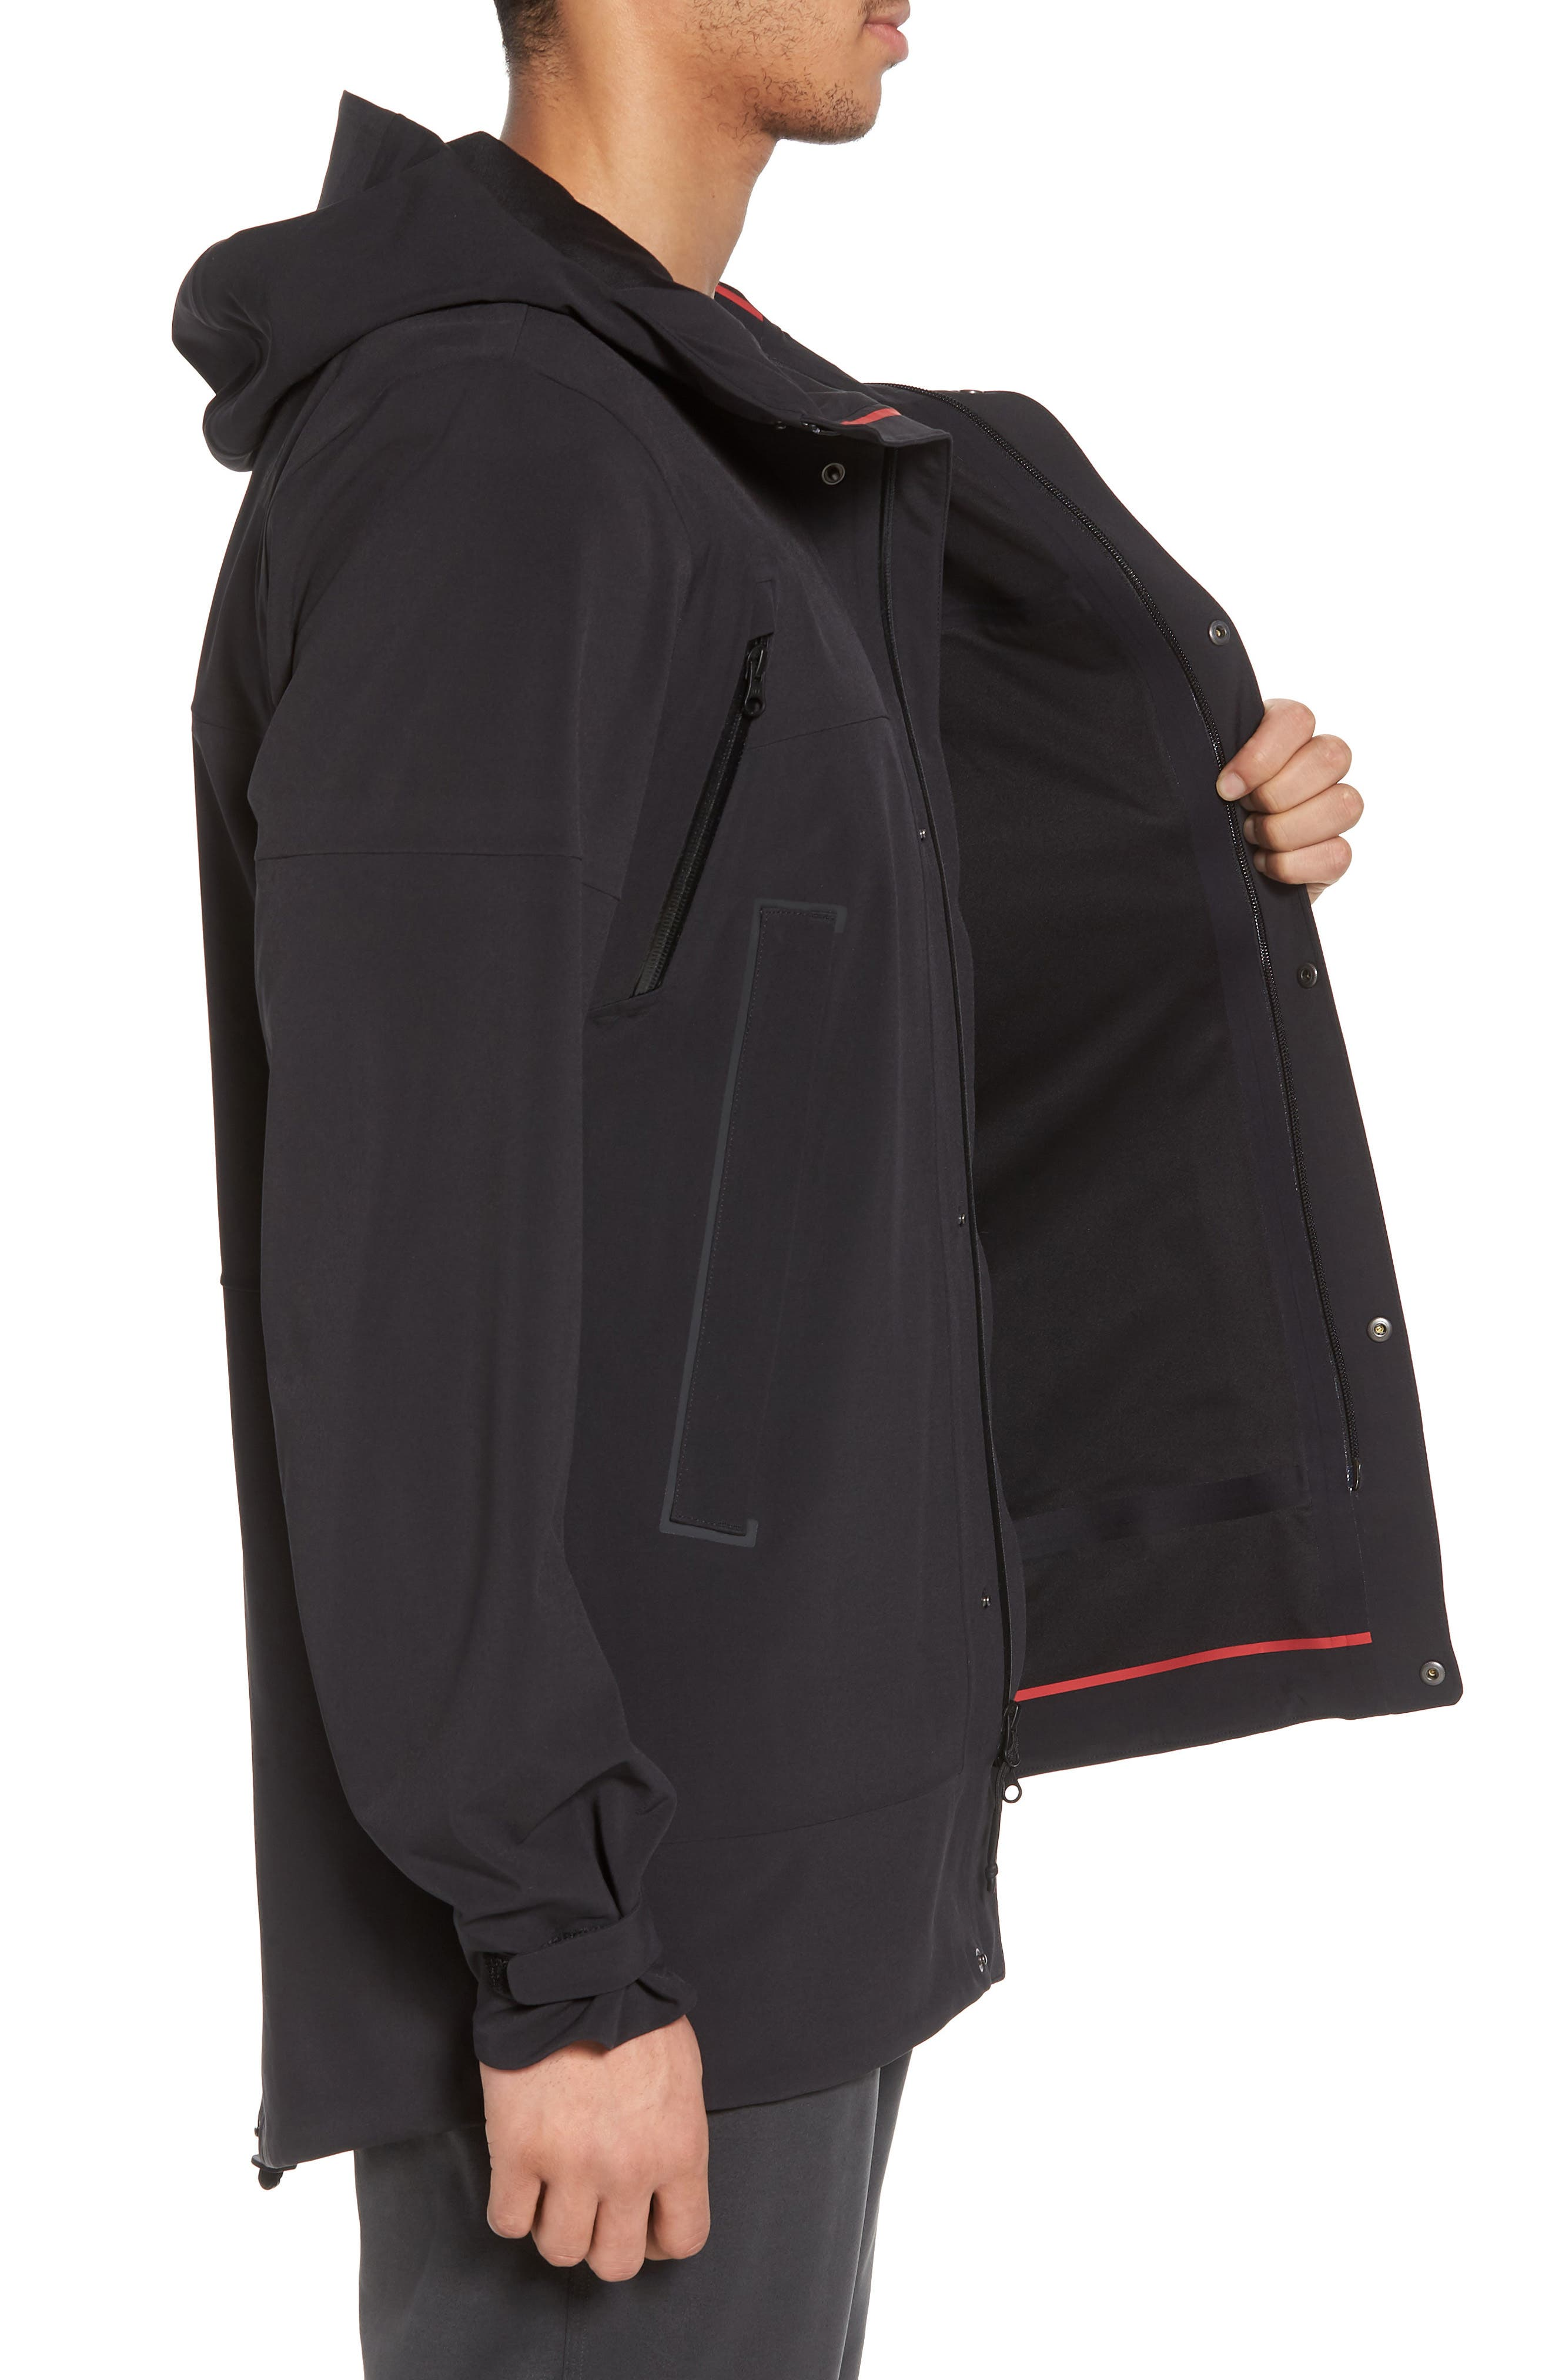 THE NORTH FACE, Apex Flex Gore-Tex<sup>®</sup> Parka, Alternate thumbnail 4, color, 001